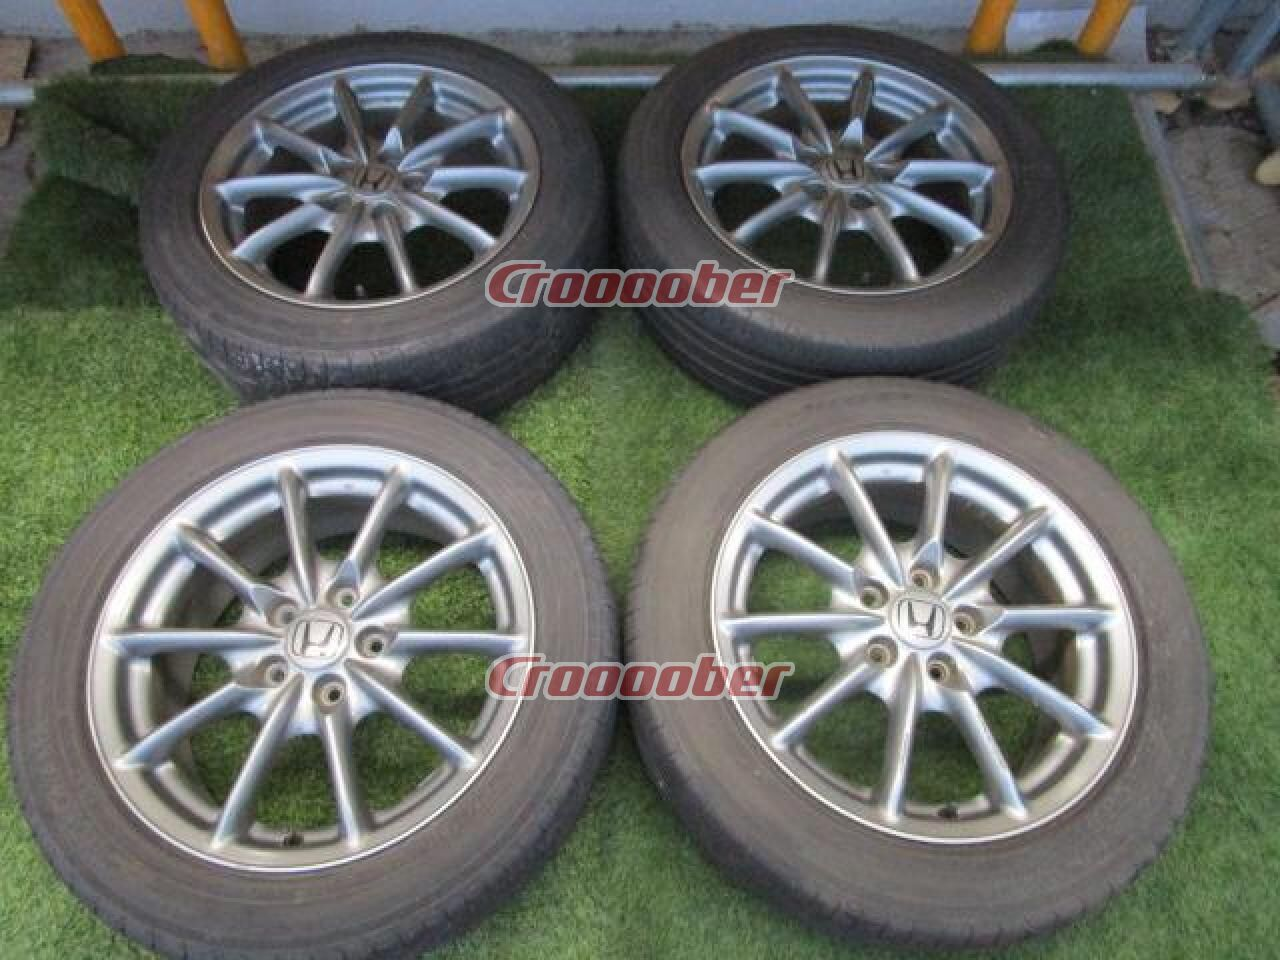 Honda Odyssey Tires >> Only 4 Honda Odyssey Rb1 Absolute Original Wheel Image Tires Are Not Included 7 0jx17 55114 3 5h For Sale Croooober